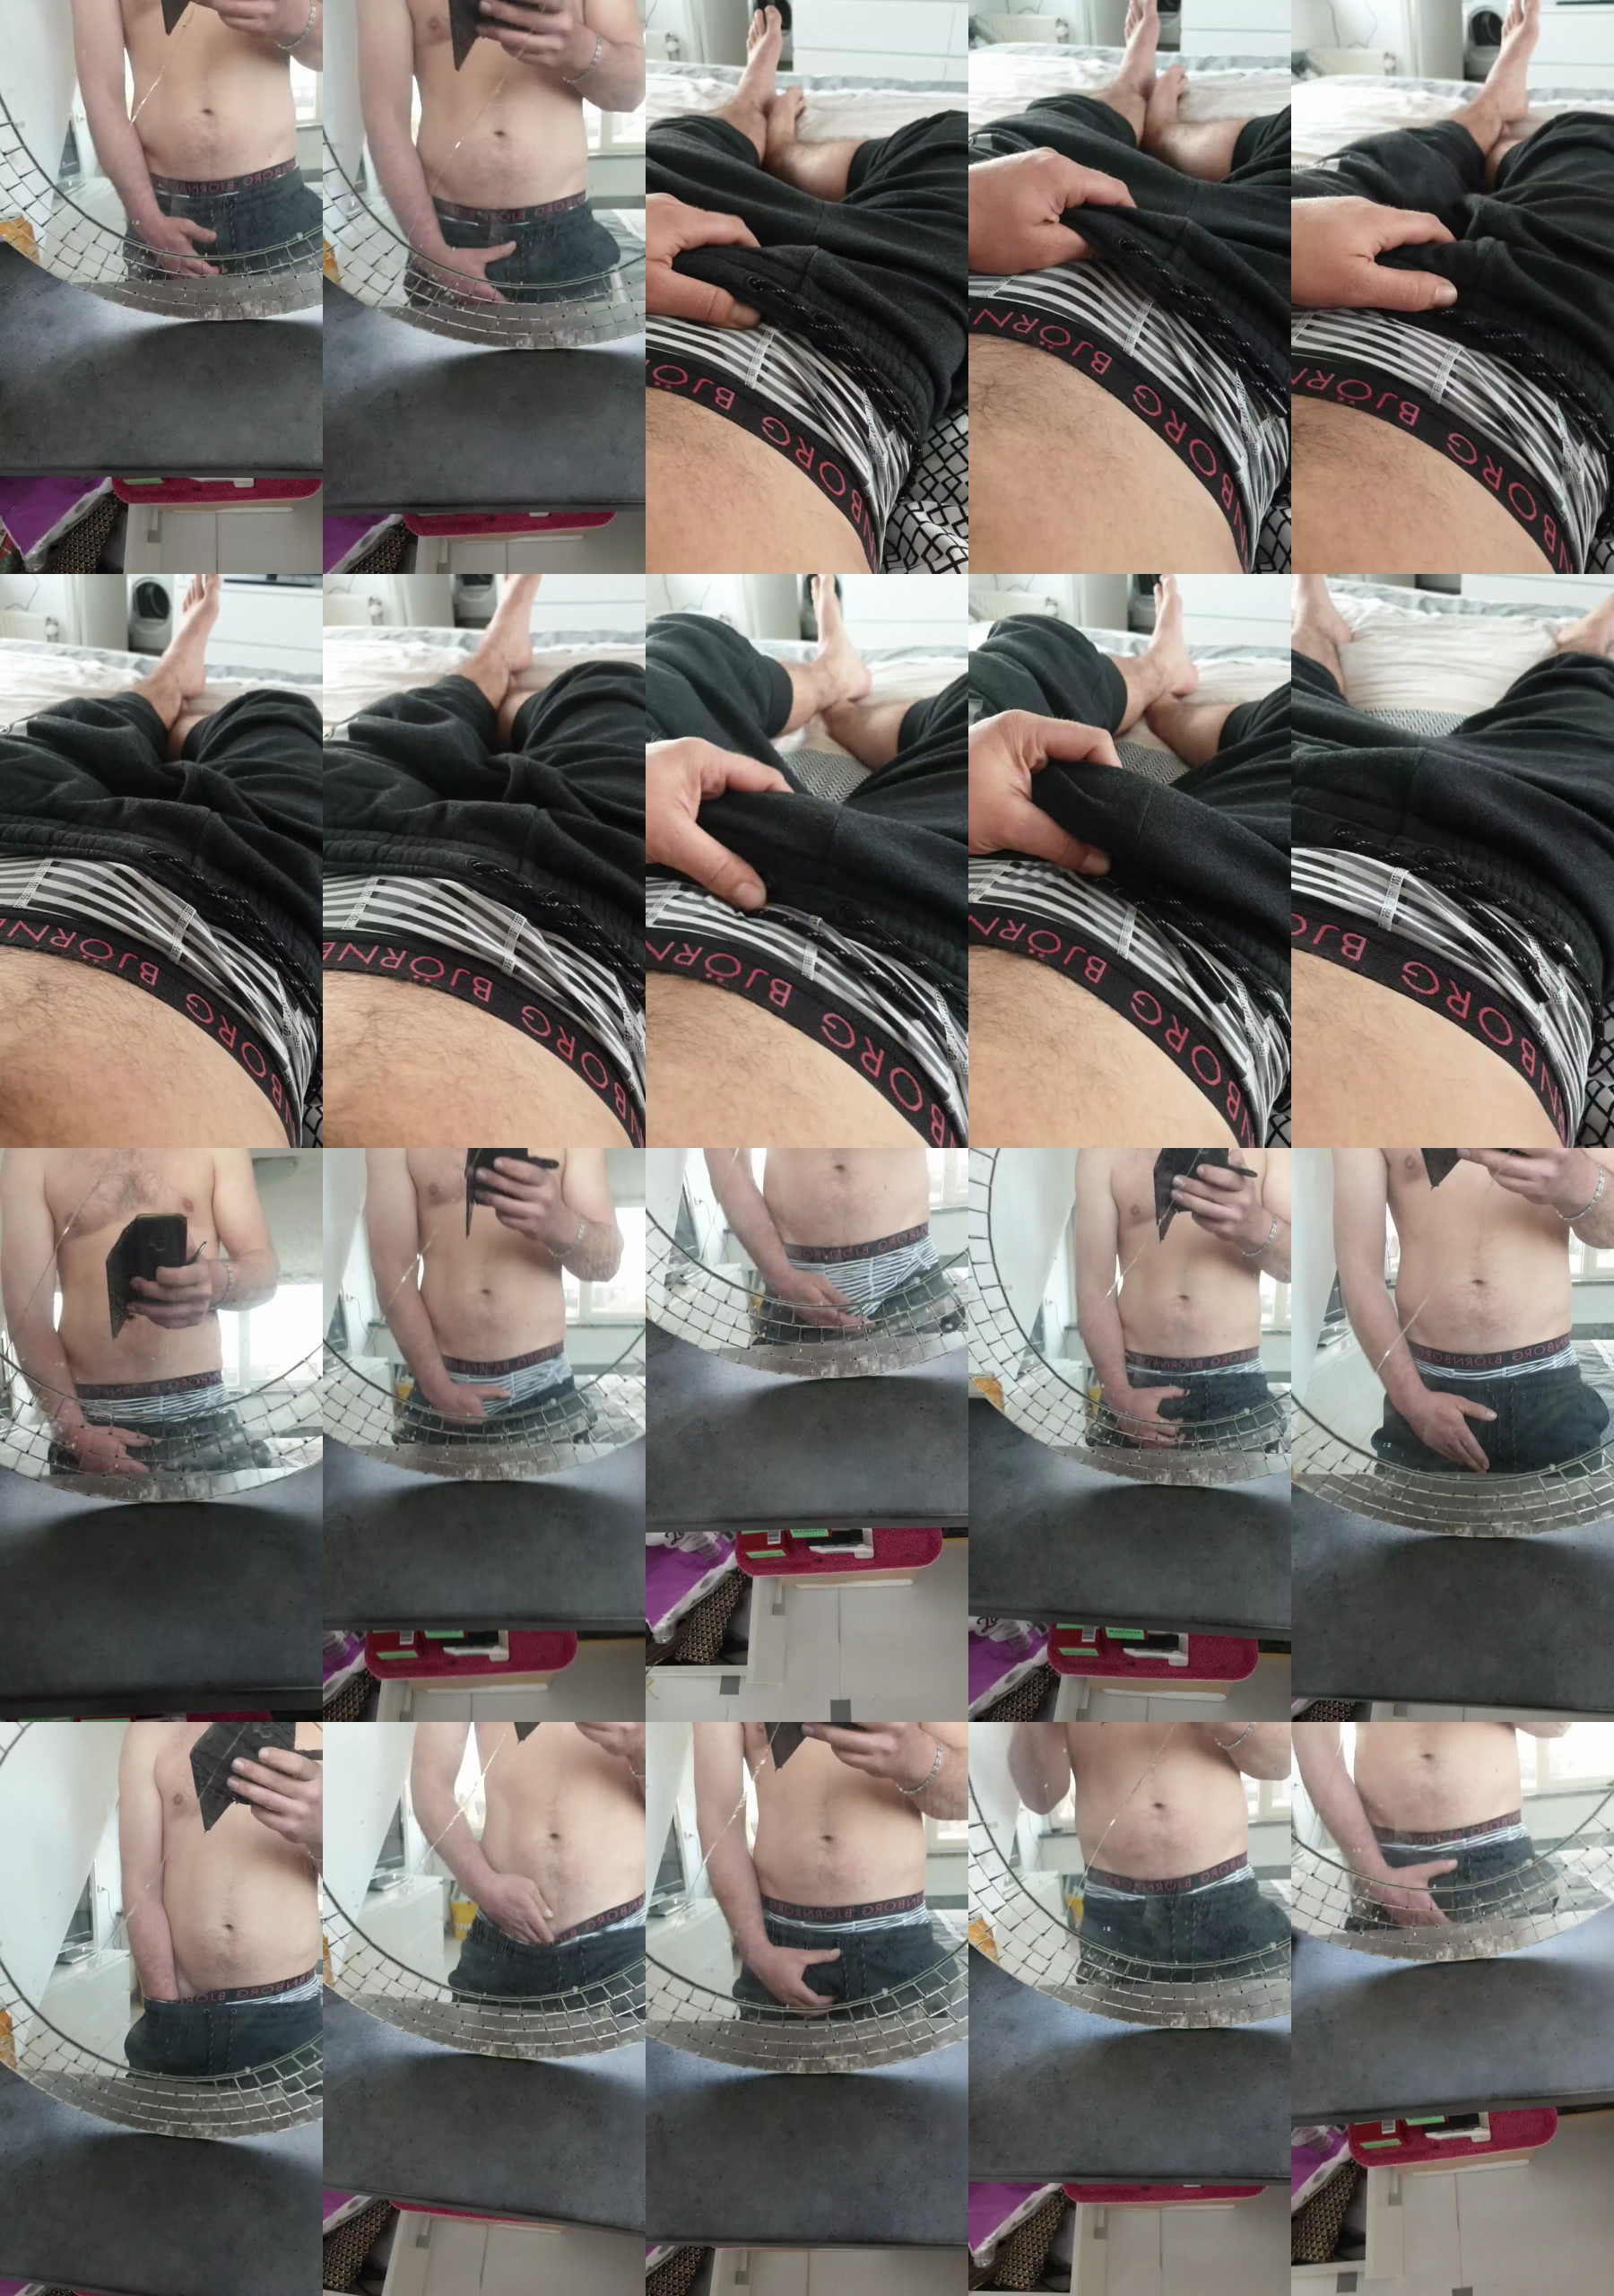 cockxldutch Cam4 14-04-2021 Recorded Video XXX